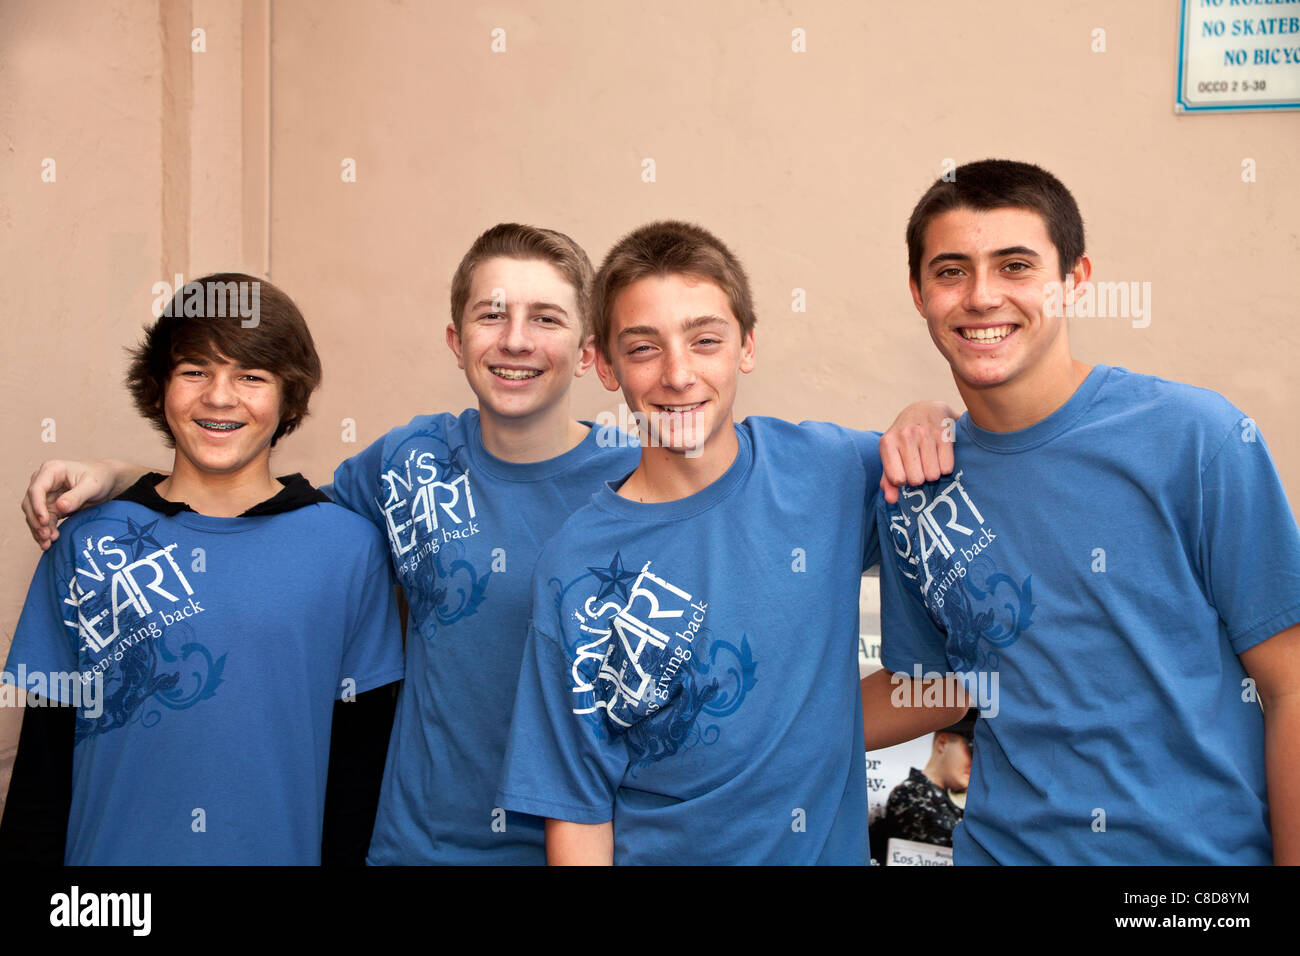 young person people Four teen boys in the Lion's heart Boys Club Hanging out smile for camera. Inside editorial - Stock Image